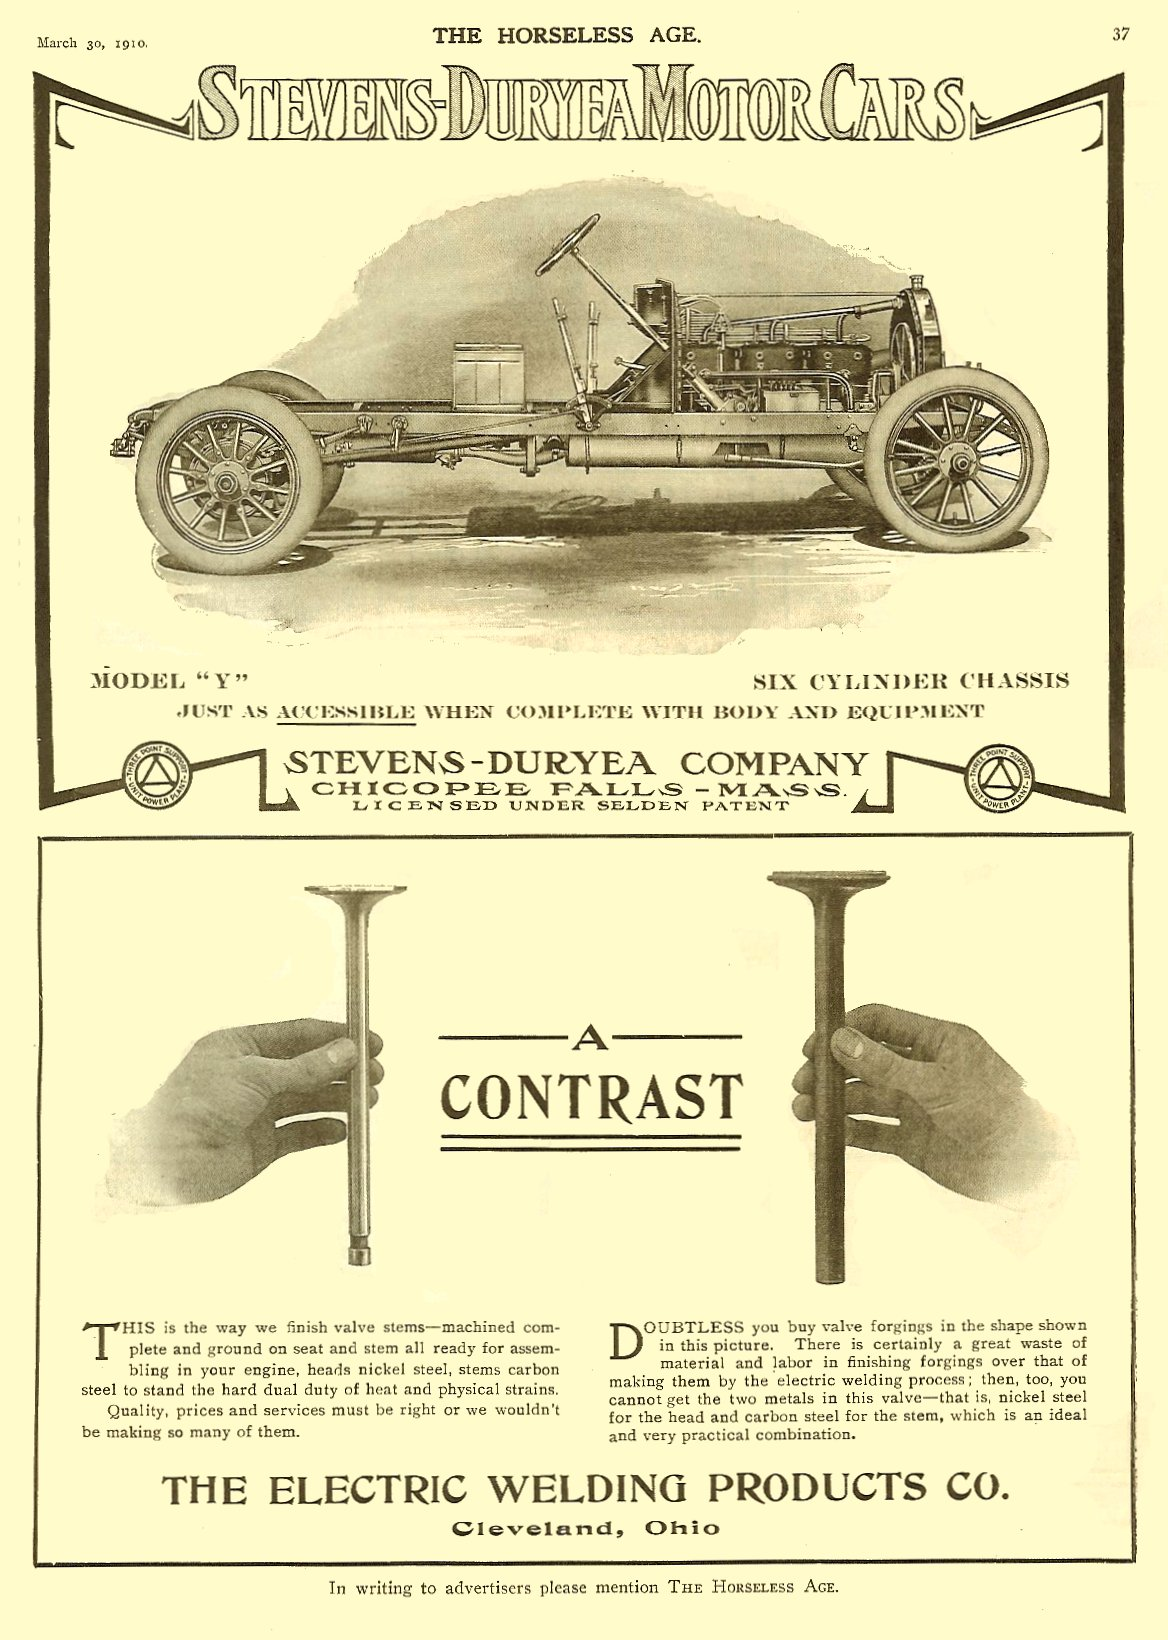 1910 3 30 Stevens-Duryea Motor Cars Chicopee Falls, MASS THE HORSELESS AGE March 30, 1910 Vol. 25 No. 13 9″x12″ page 37